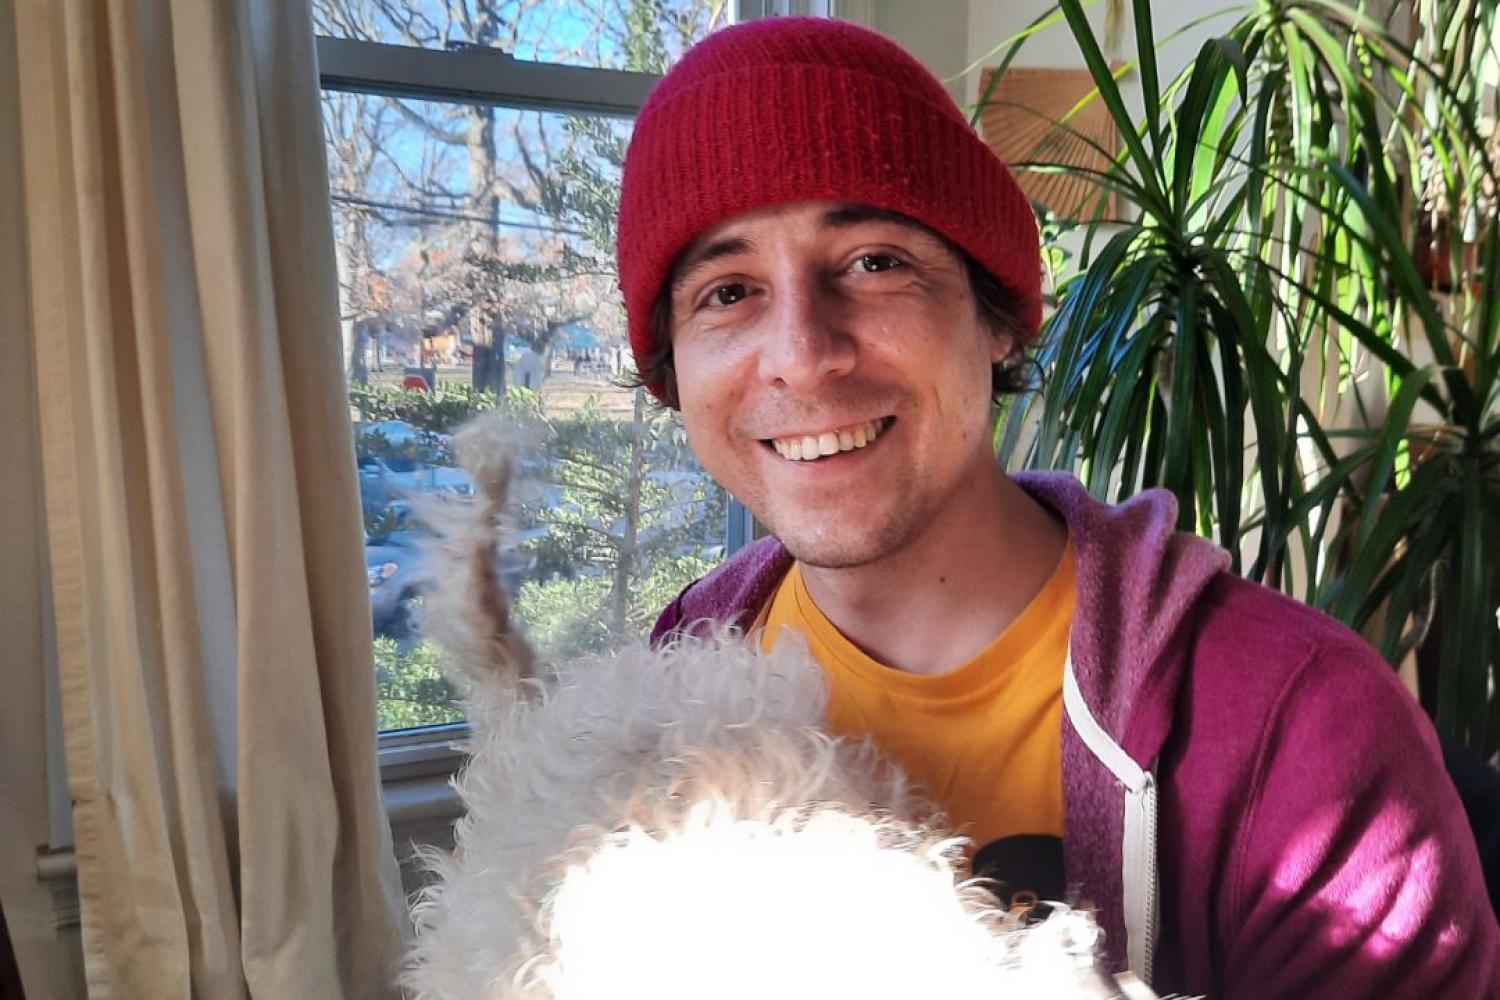 Alan Chelak smiling and wearing a knit cap, with his fluffy white dog on his lap in a sunlit room full of plants